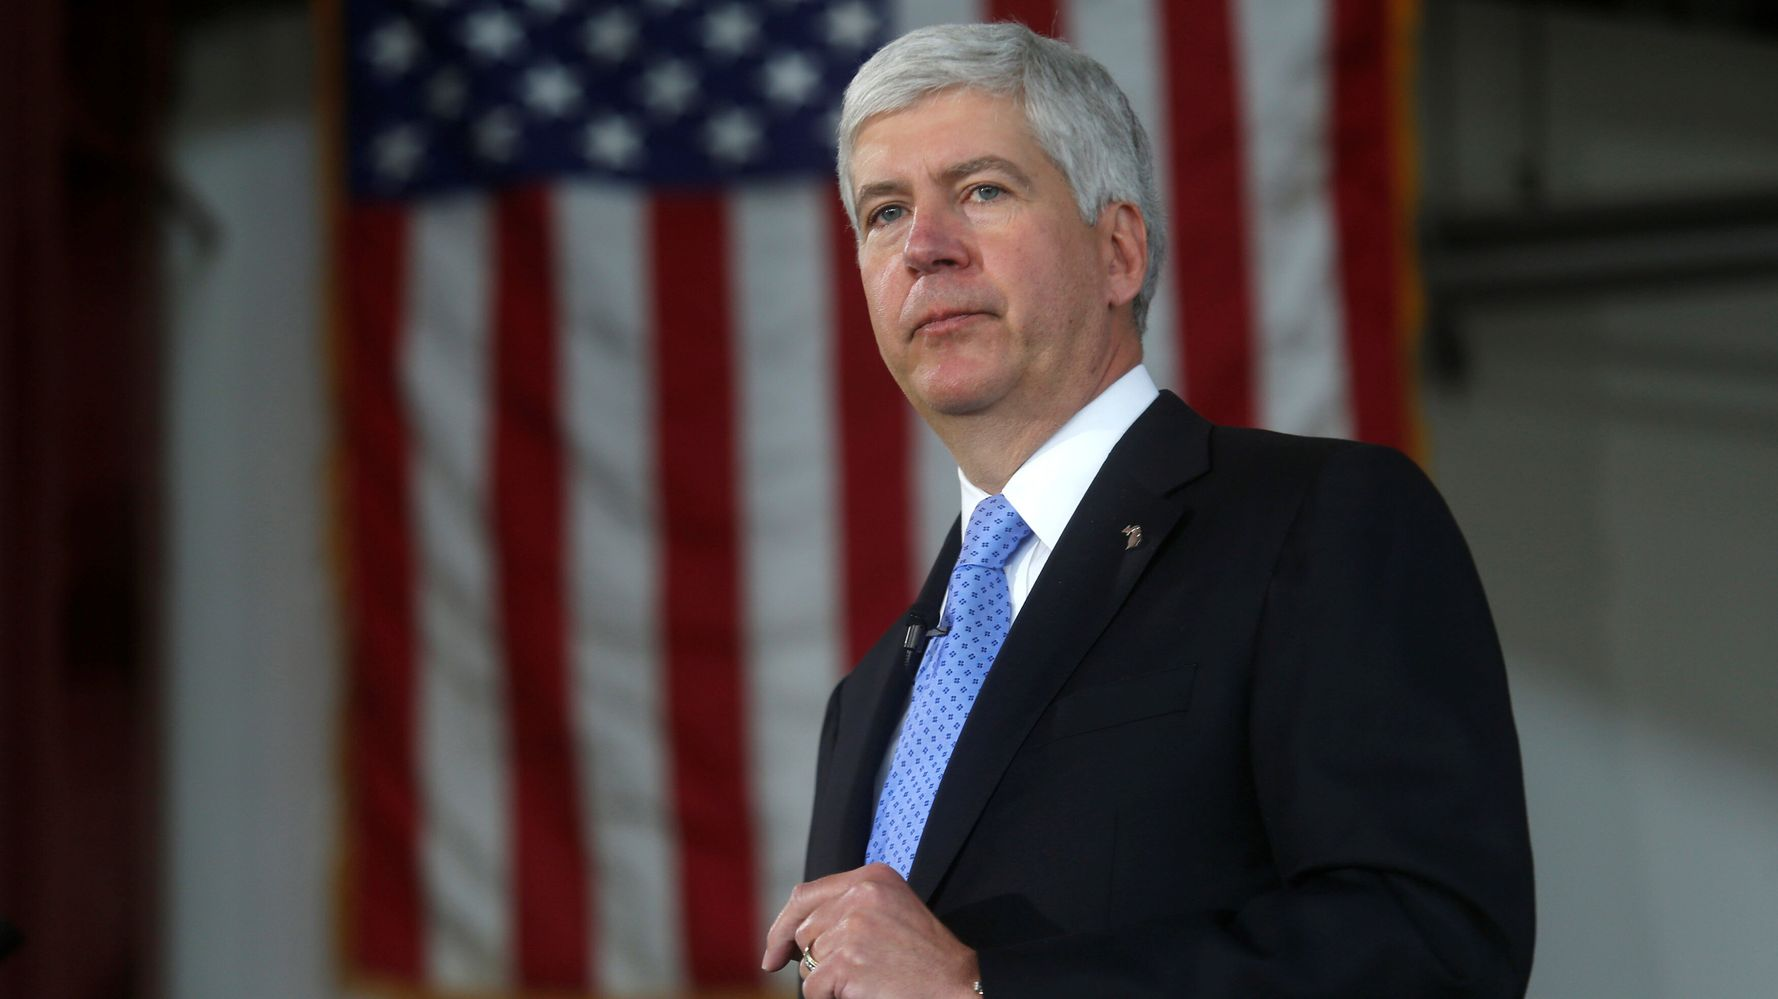 Ex-Michigan Gov  Rick Snyder Who Oversaw Flint Water Crisis